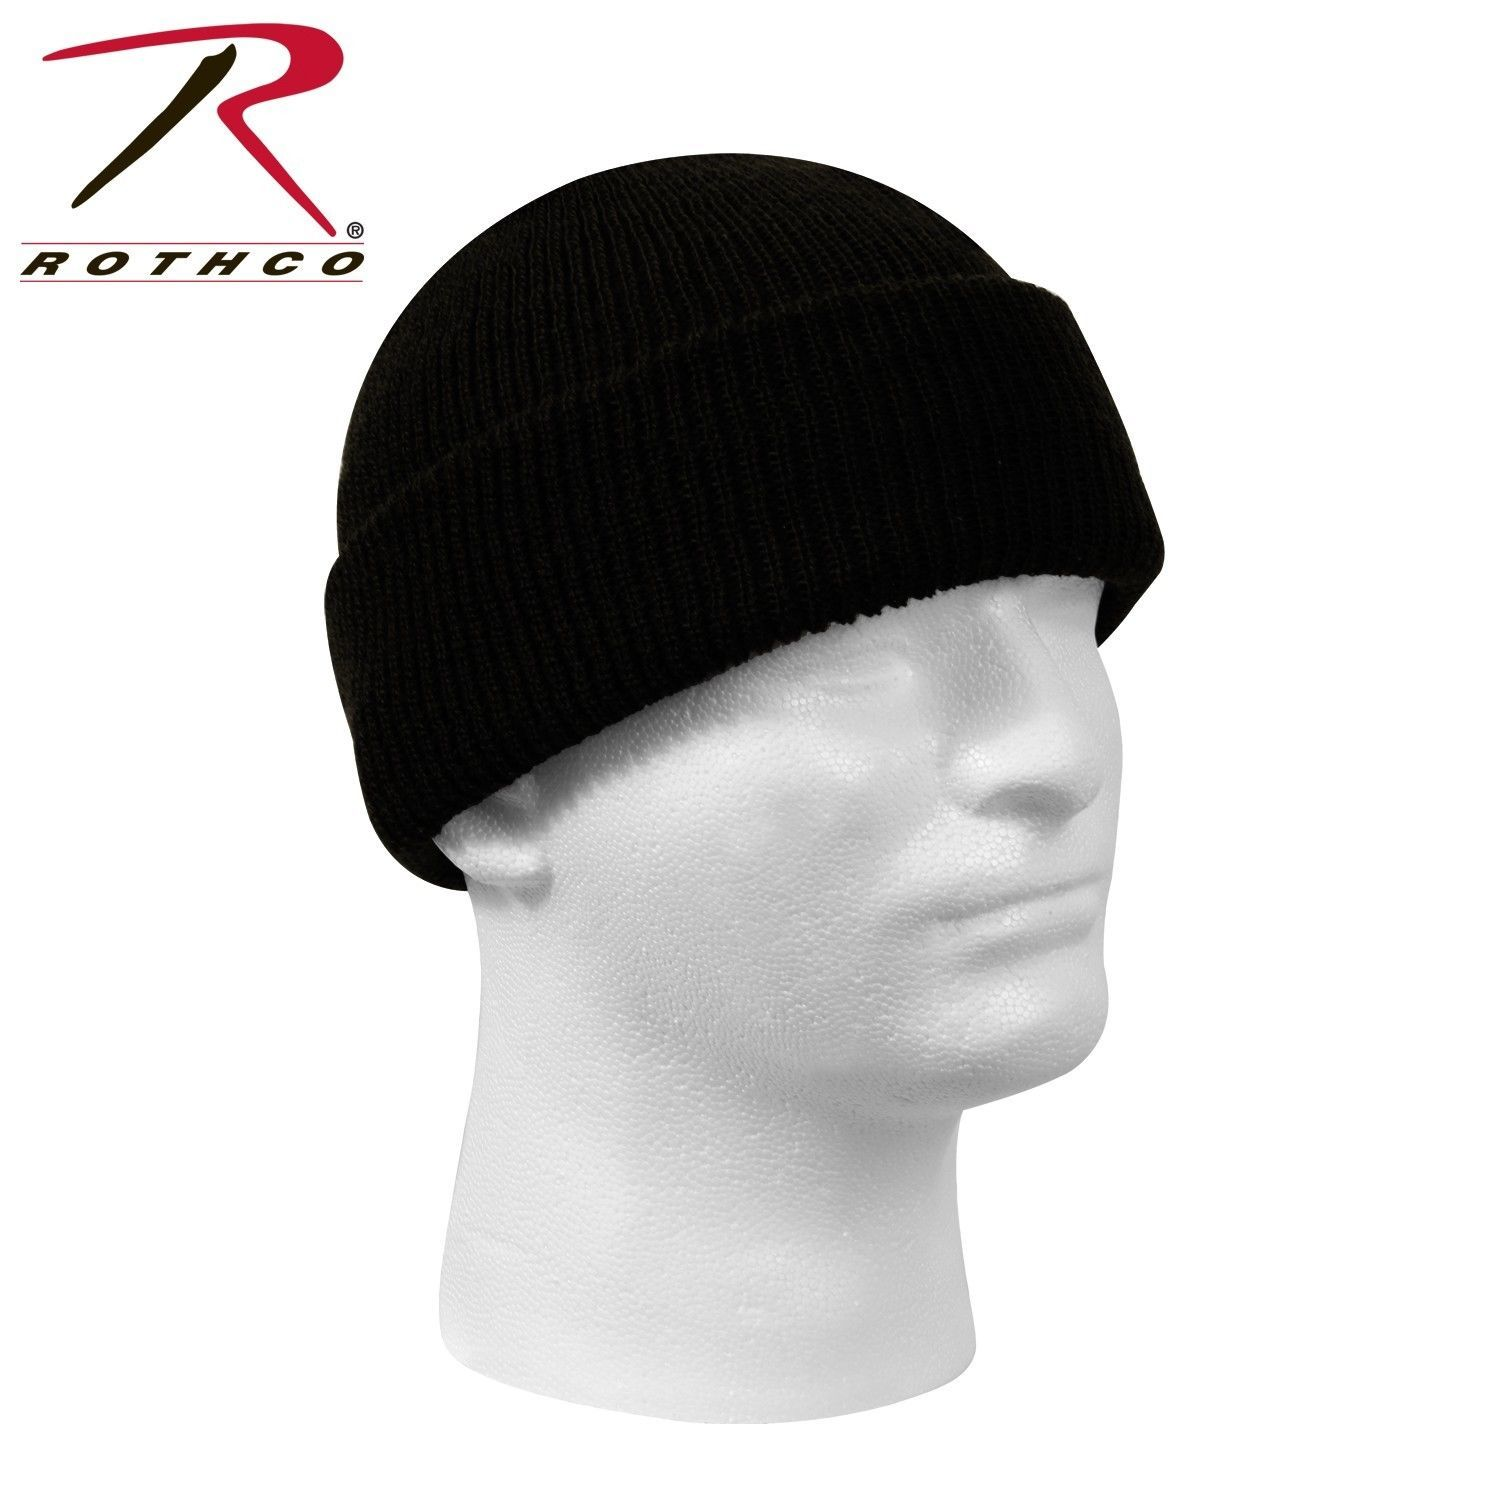 1af2defe8aa New Genuine Black Winter Beanie Hat Wool Watch Cap USA Made Rothco ...